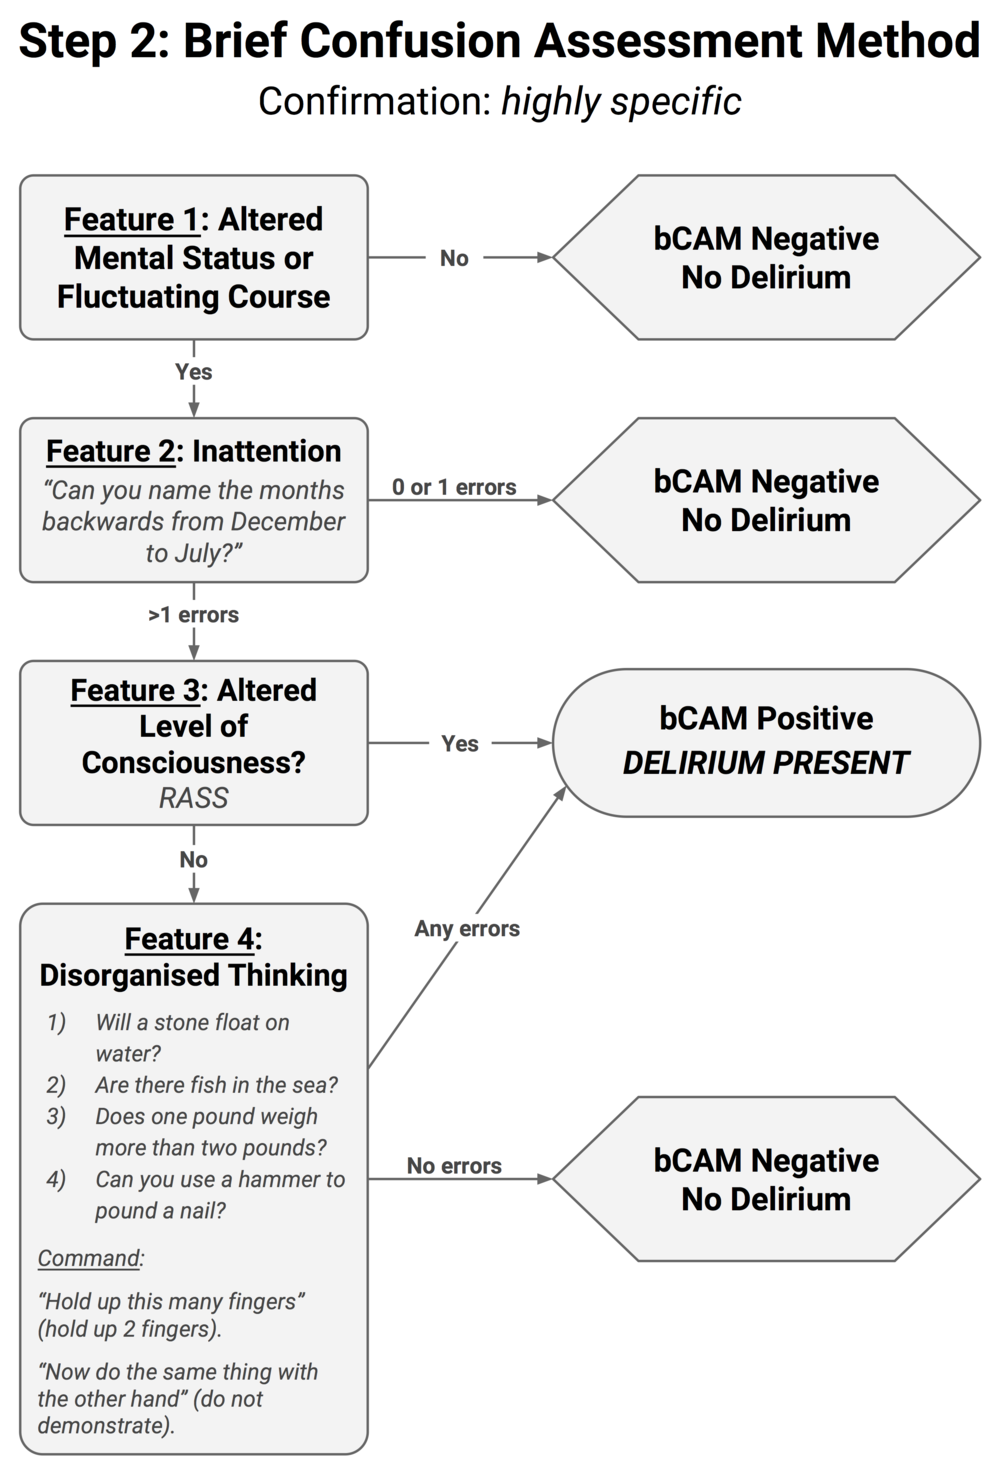 Diagram 3.  Brief Confusion Assessment Method (bCAM)